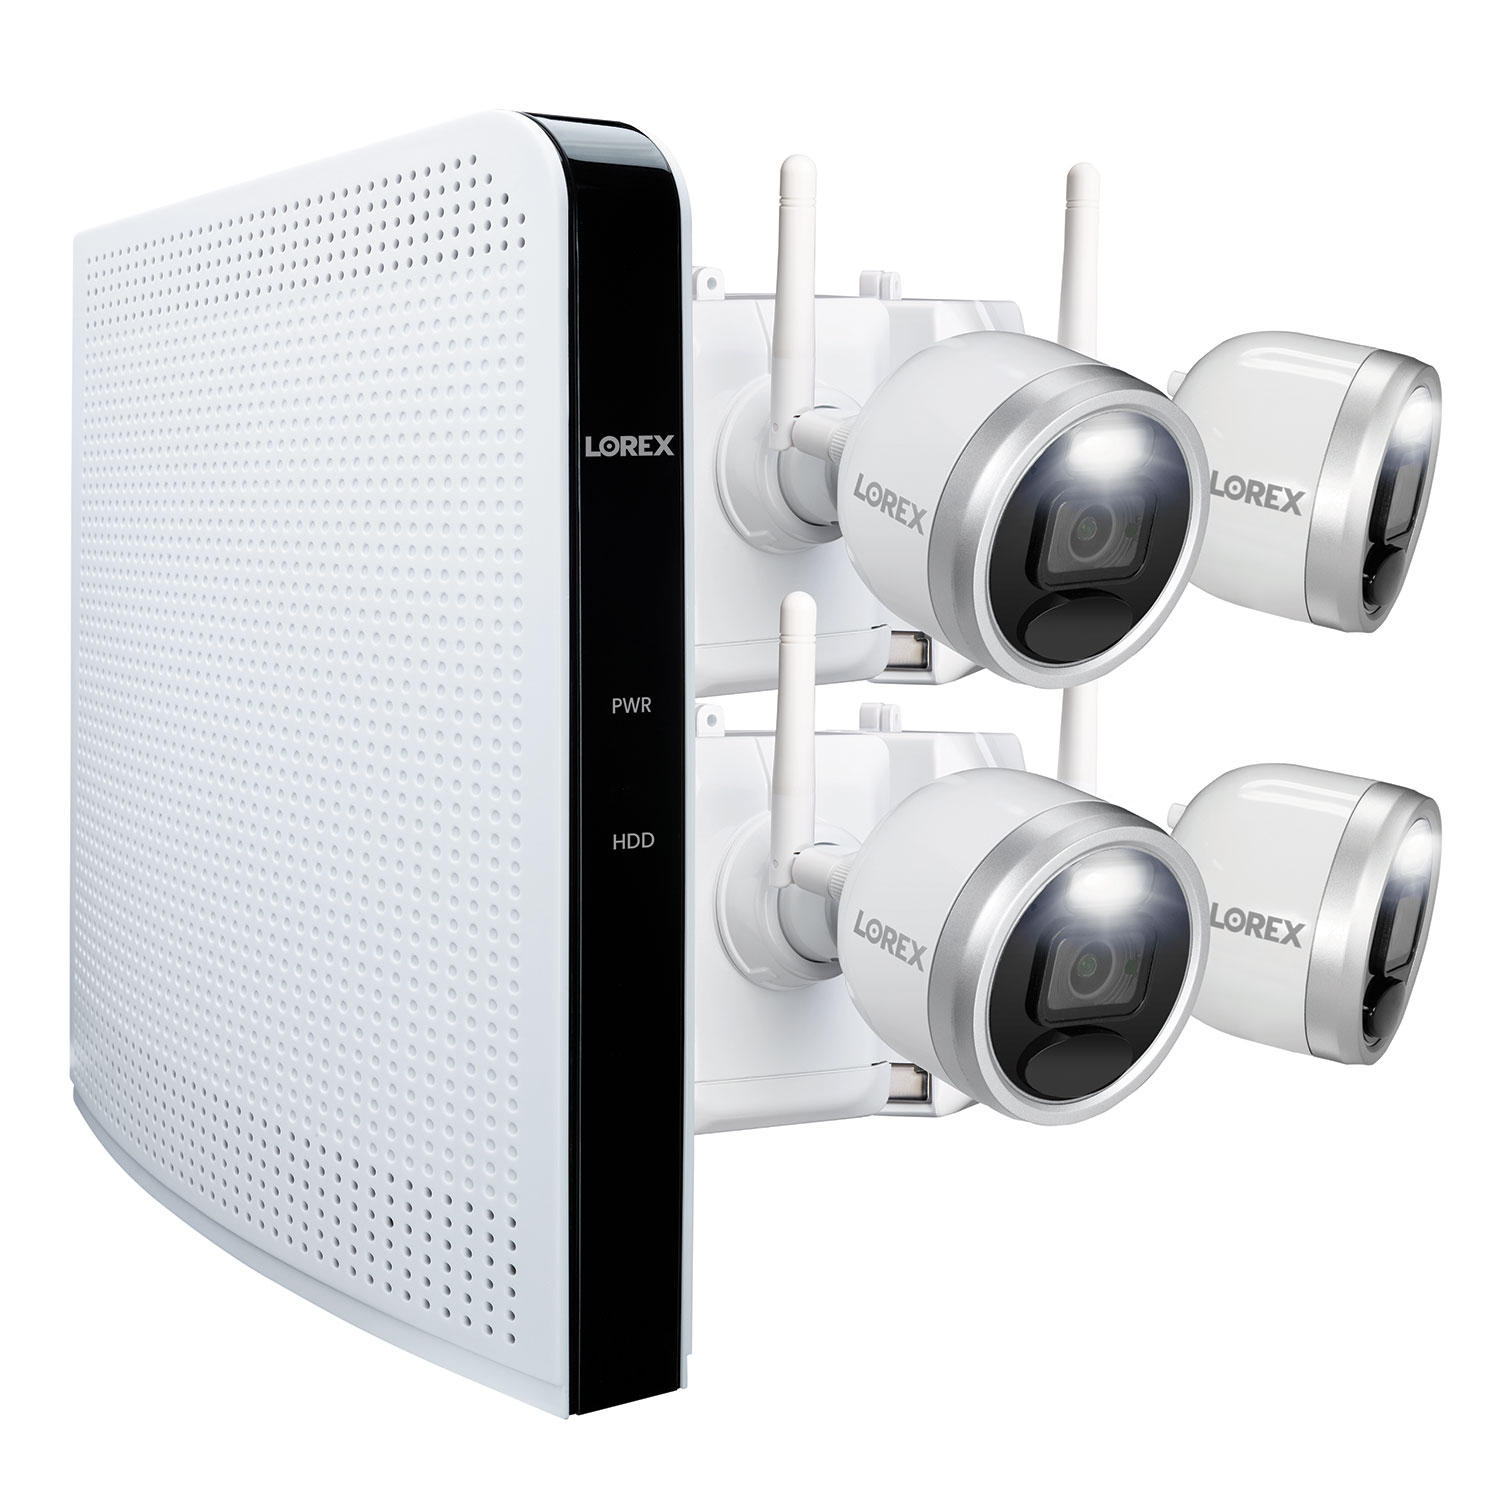 Lorex 4 Camera 1080p HD Wire-Free Security System